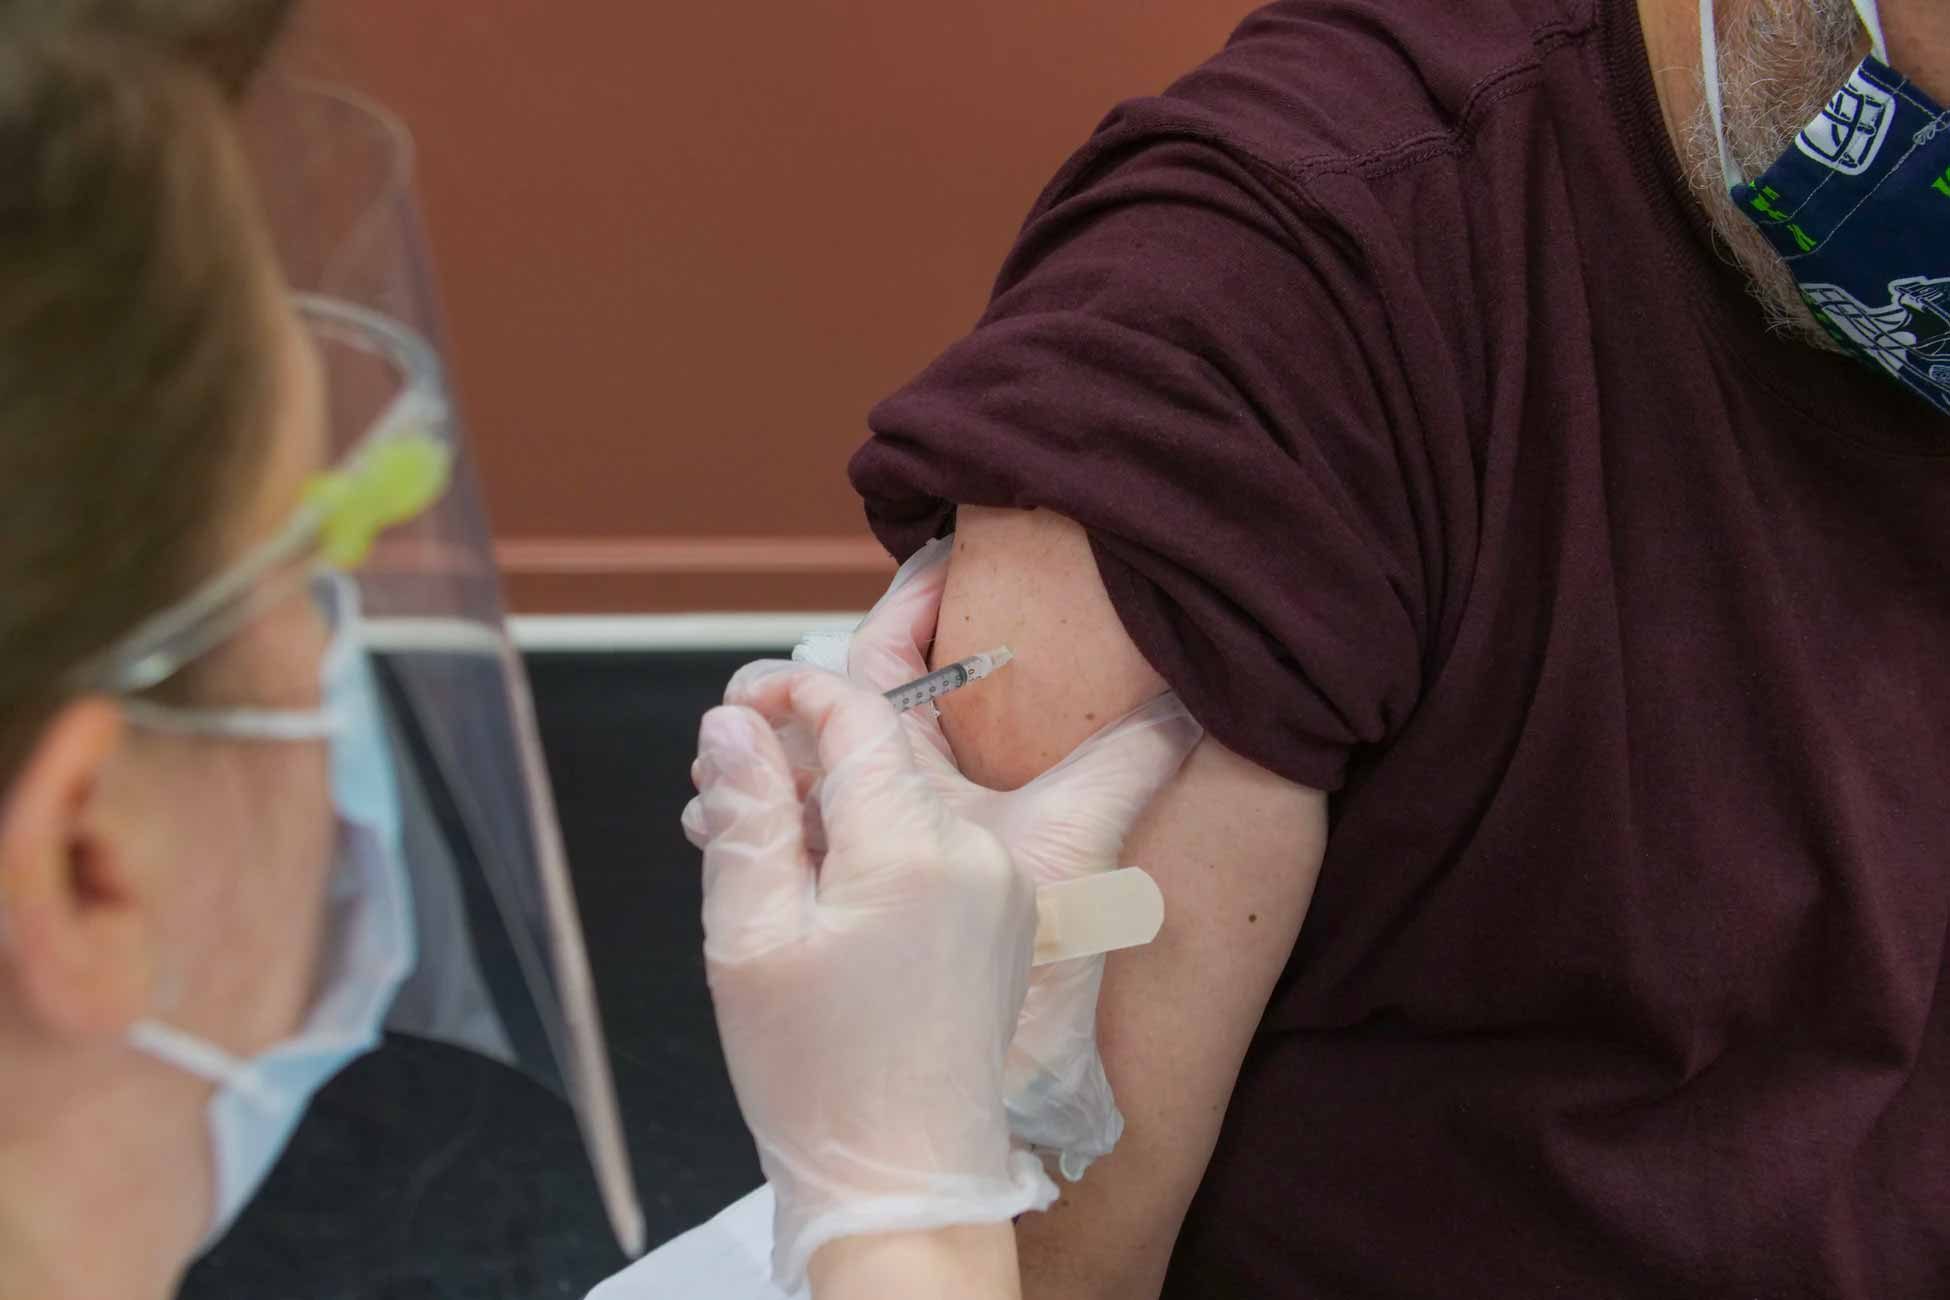 image of person being vaccinated